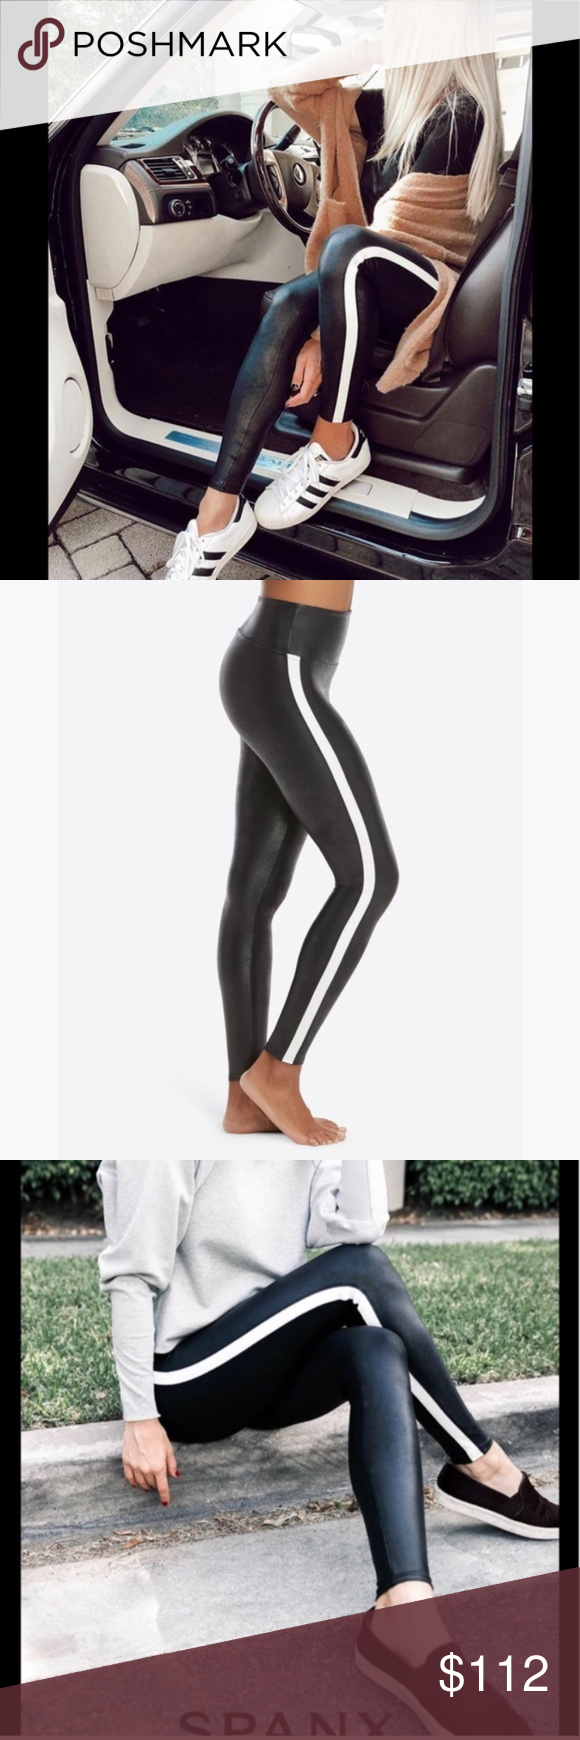 New SPANX Faux Leather Side Stripe Leggings 2X NWT In Faux Leather leggings, you're everyone's asspiration! Designed with contoured Power Waistband, these leggings give you a flat gut & GREAT butt. Camel-toe proof! The flattering high-gloss fabric is a total compliment magnet & keeps you ultra-comfortable all day and night. Once you put them on you'll never take them off…they're that good.   size 2X approx. inseam 27 new with tags color: very black   white designer: Spanx Style 20187P  smoke-fr #stripedleggings